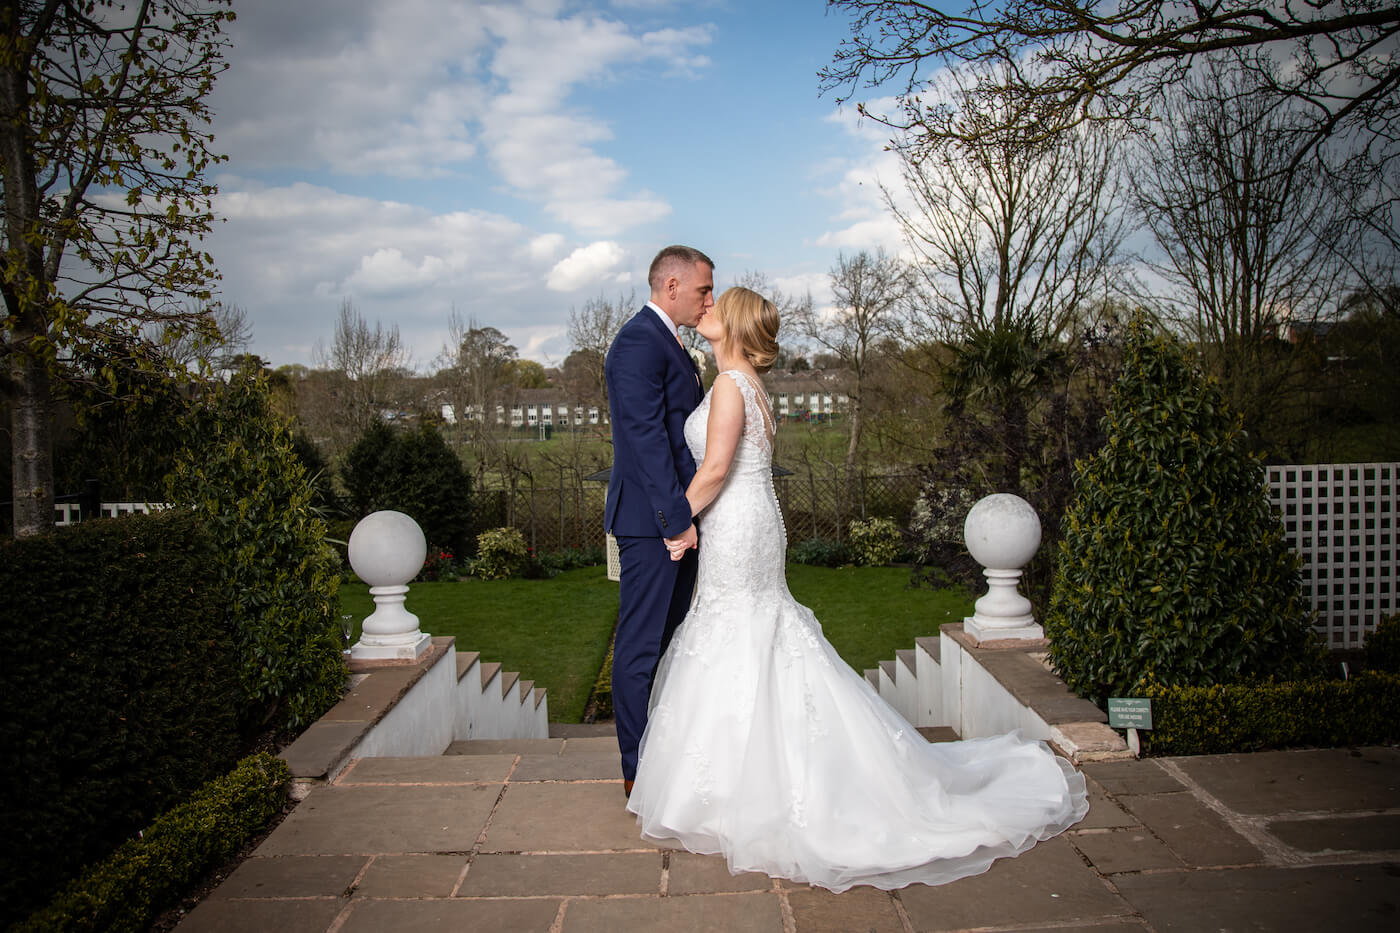 Outdoor wedding at Warwick House